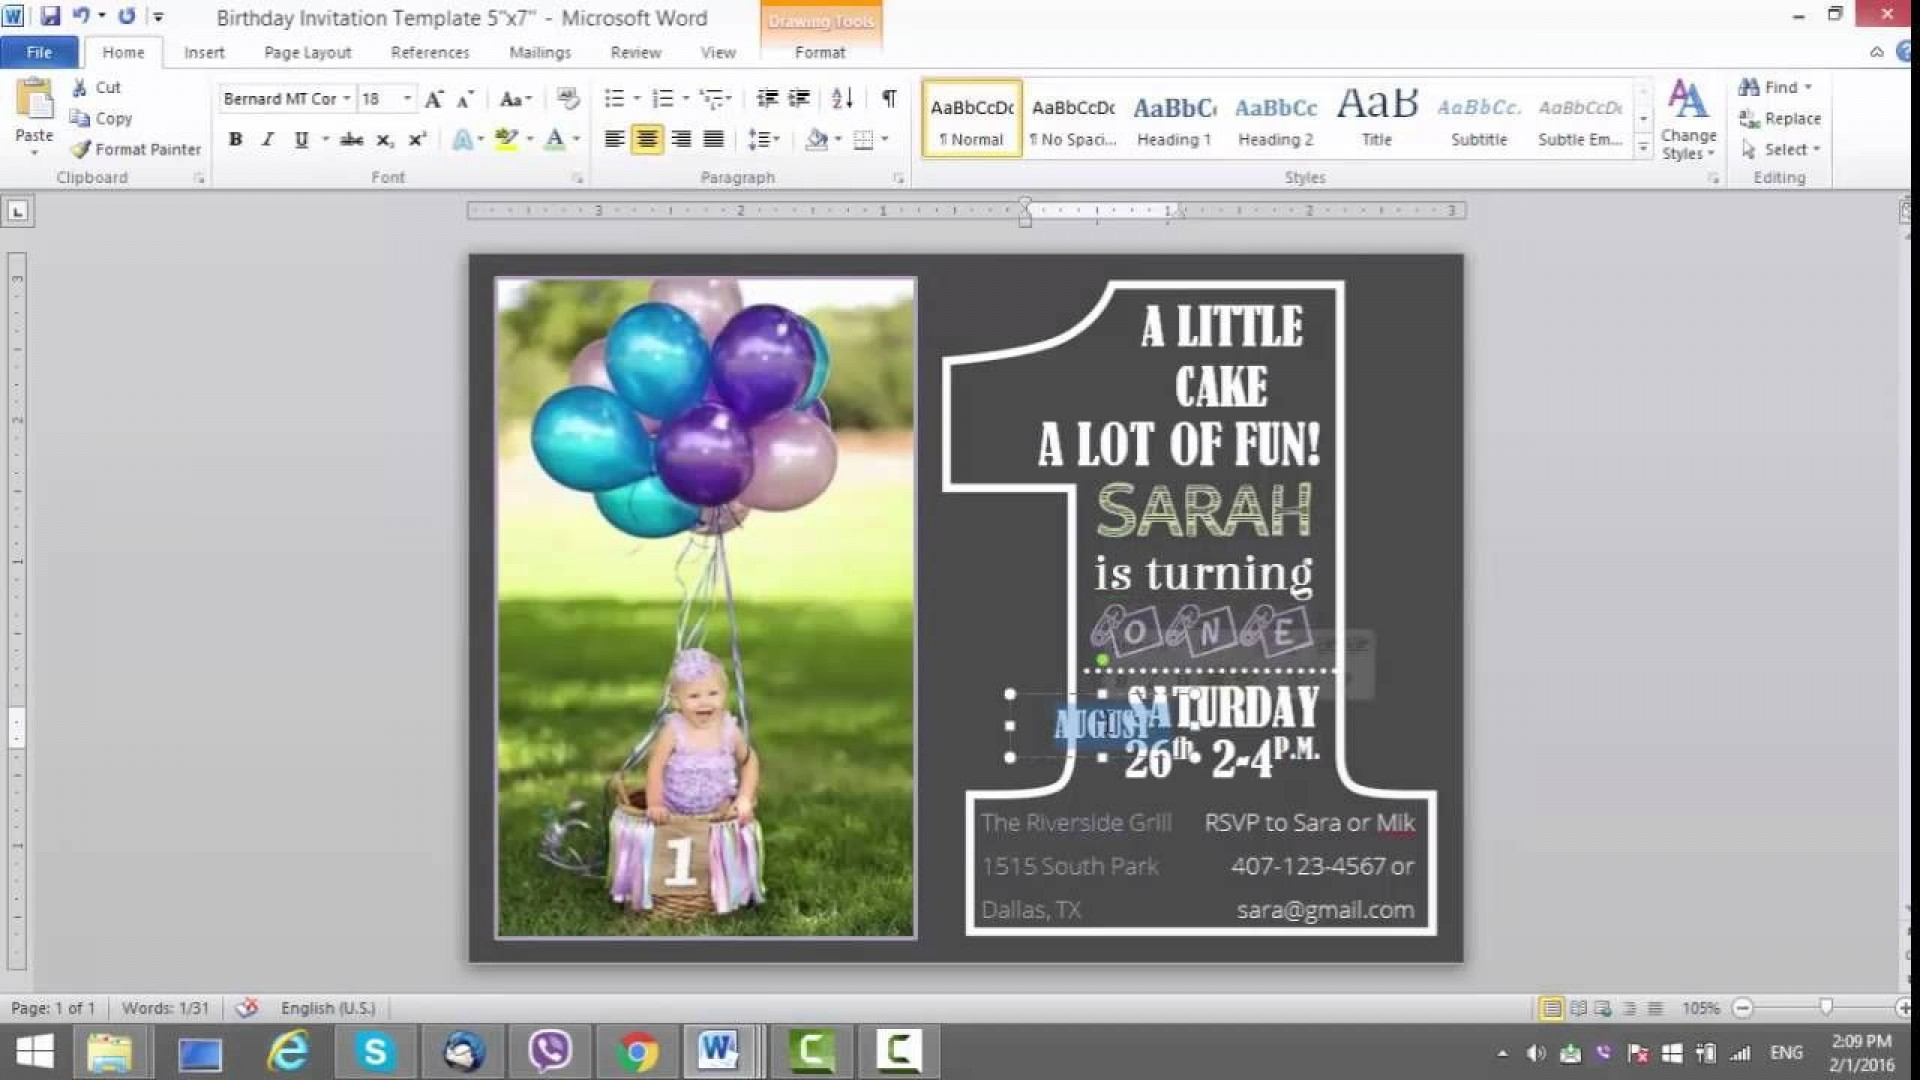 008 Singular Microsoft Word Birthday Card Invitation Template Design 1920